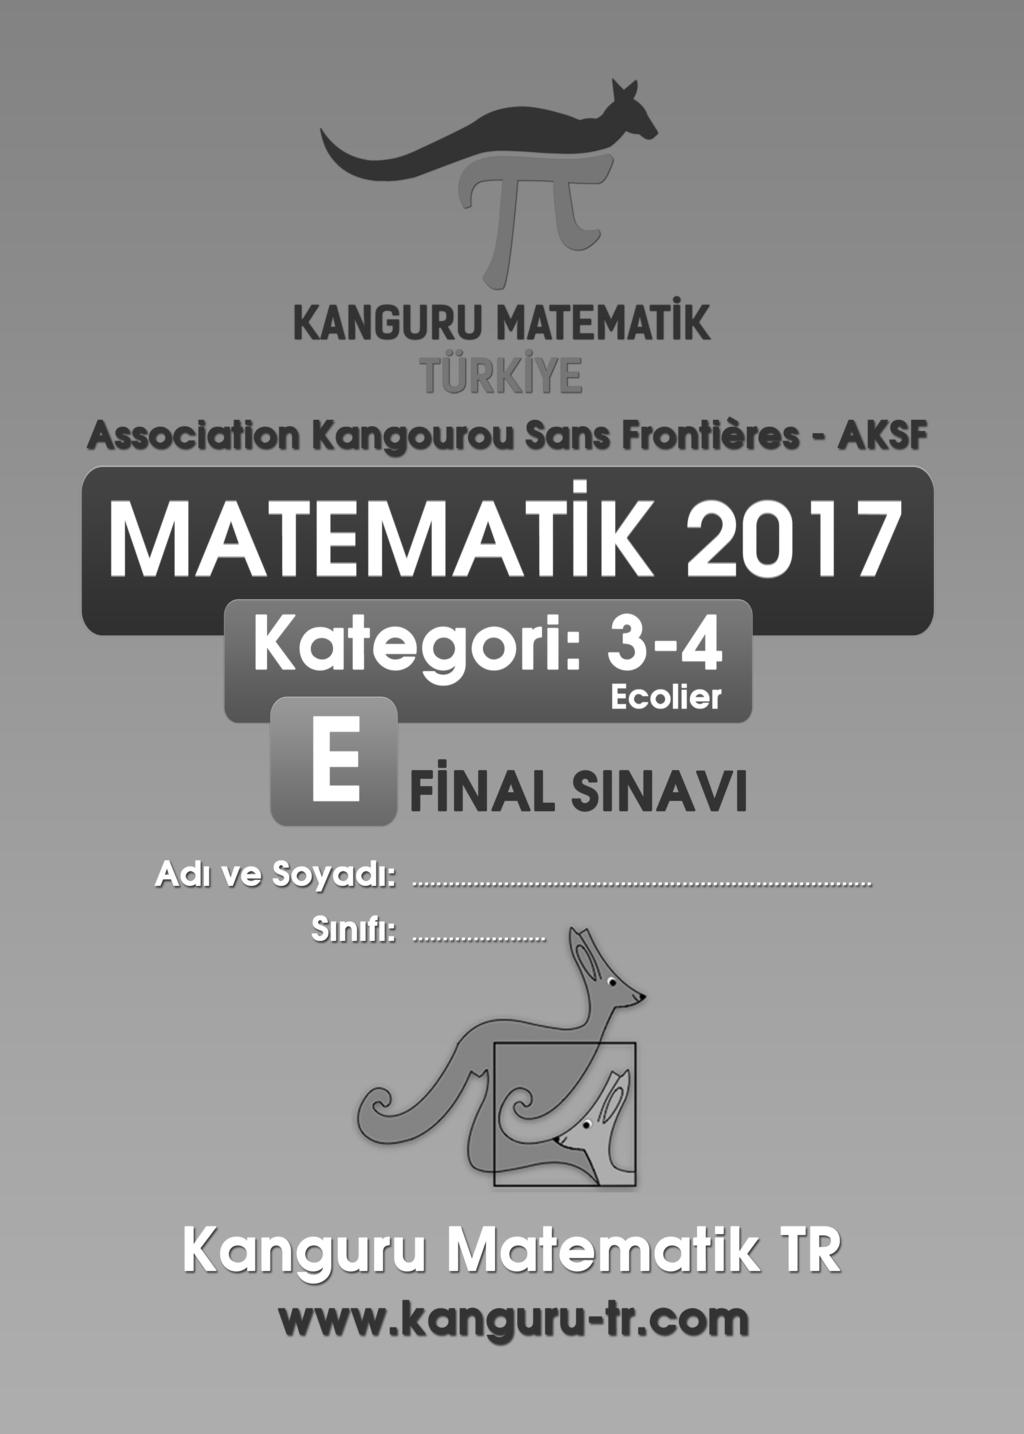 Kanguru Matematik Turkiye Pdf Free Download